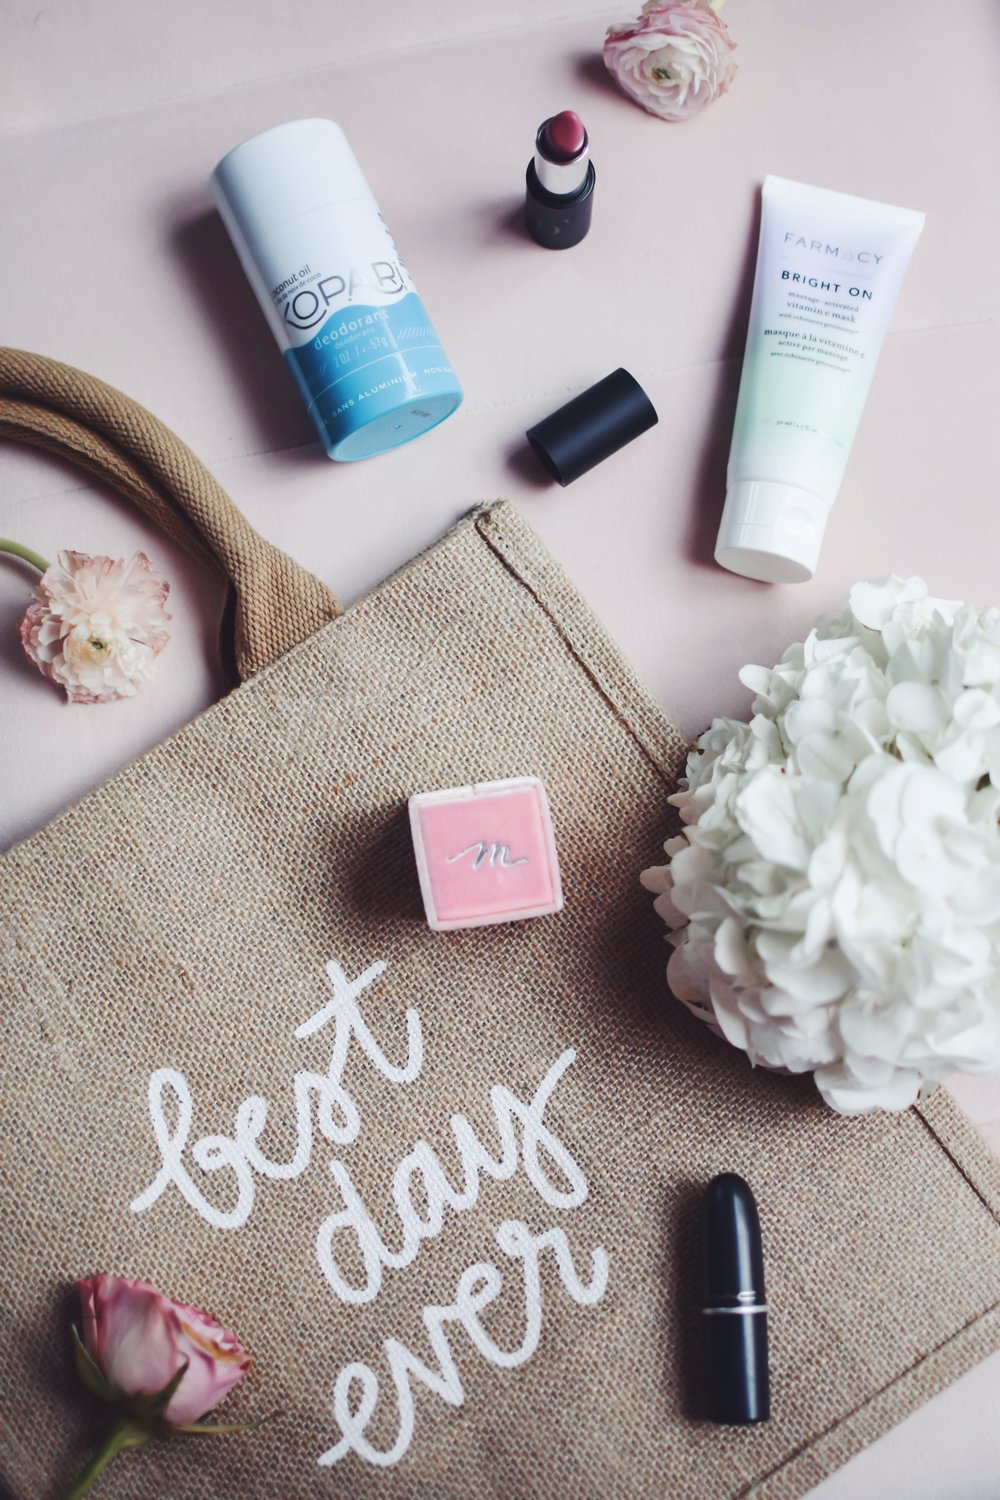 Wedding Day Must Haves | Pine Barren Beauty | kopari coconut deodorant, farmacy bright on face mask, glo skin beauty lipstick, Mac lipstick, the mrs ring box, best day every tote bag by the little market